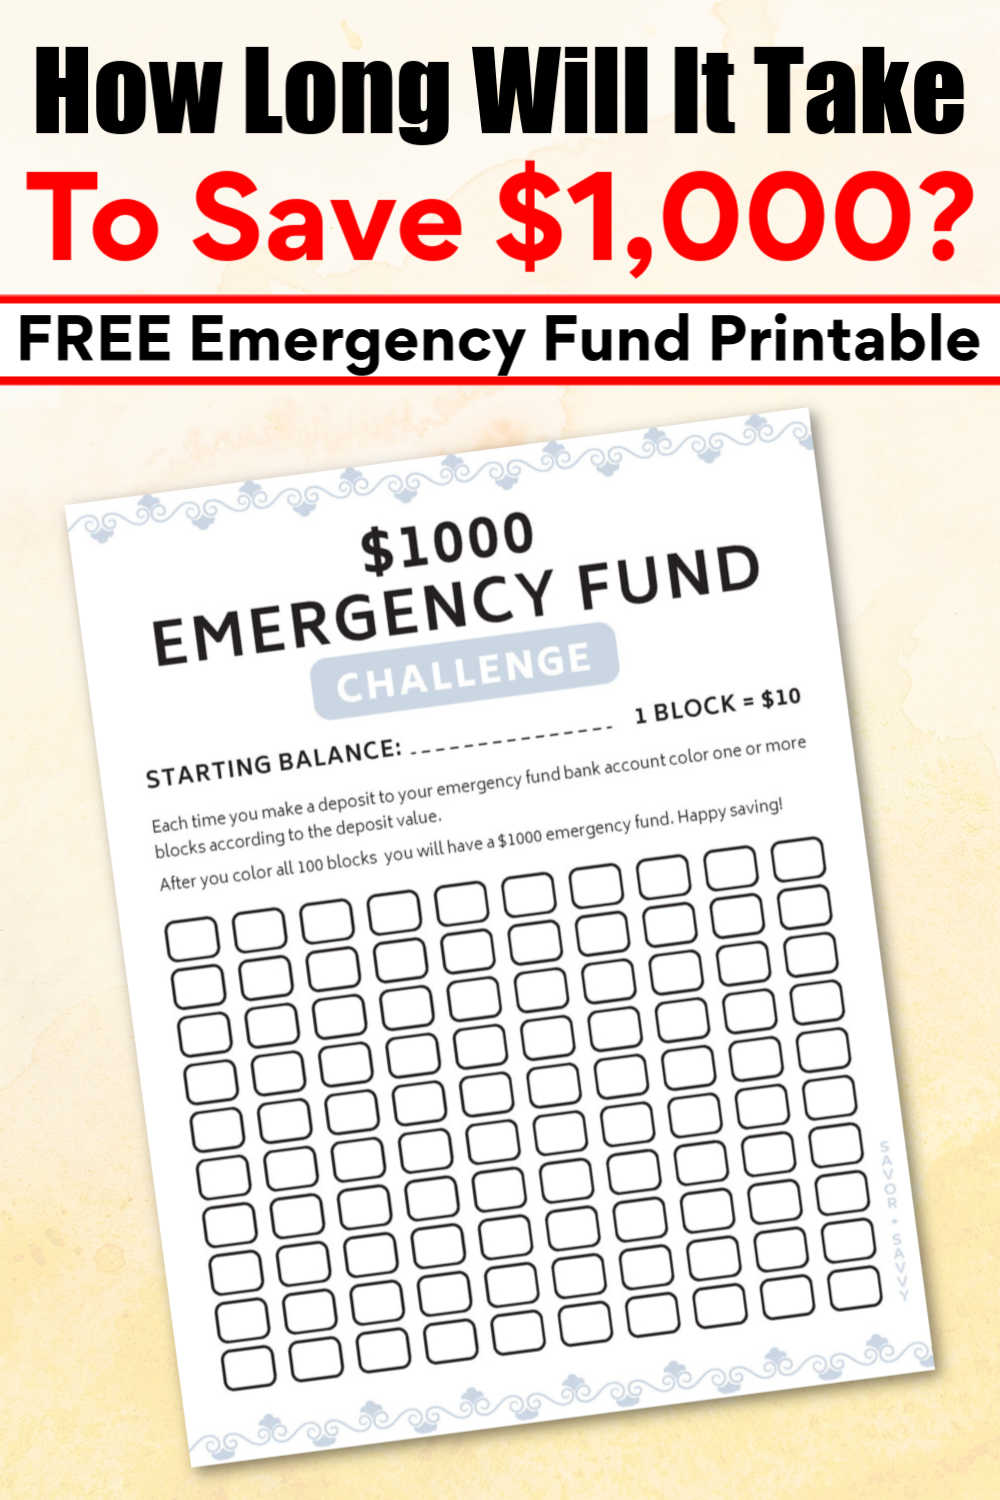 $1000 Emergency Fund Challenge and Free Printable